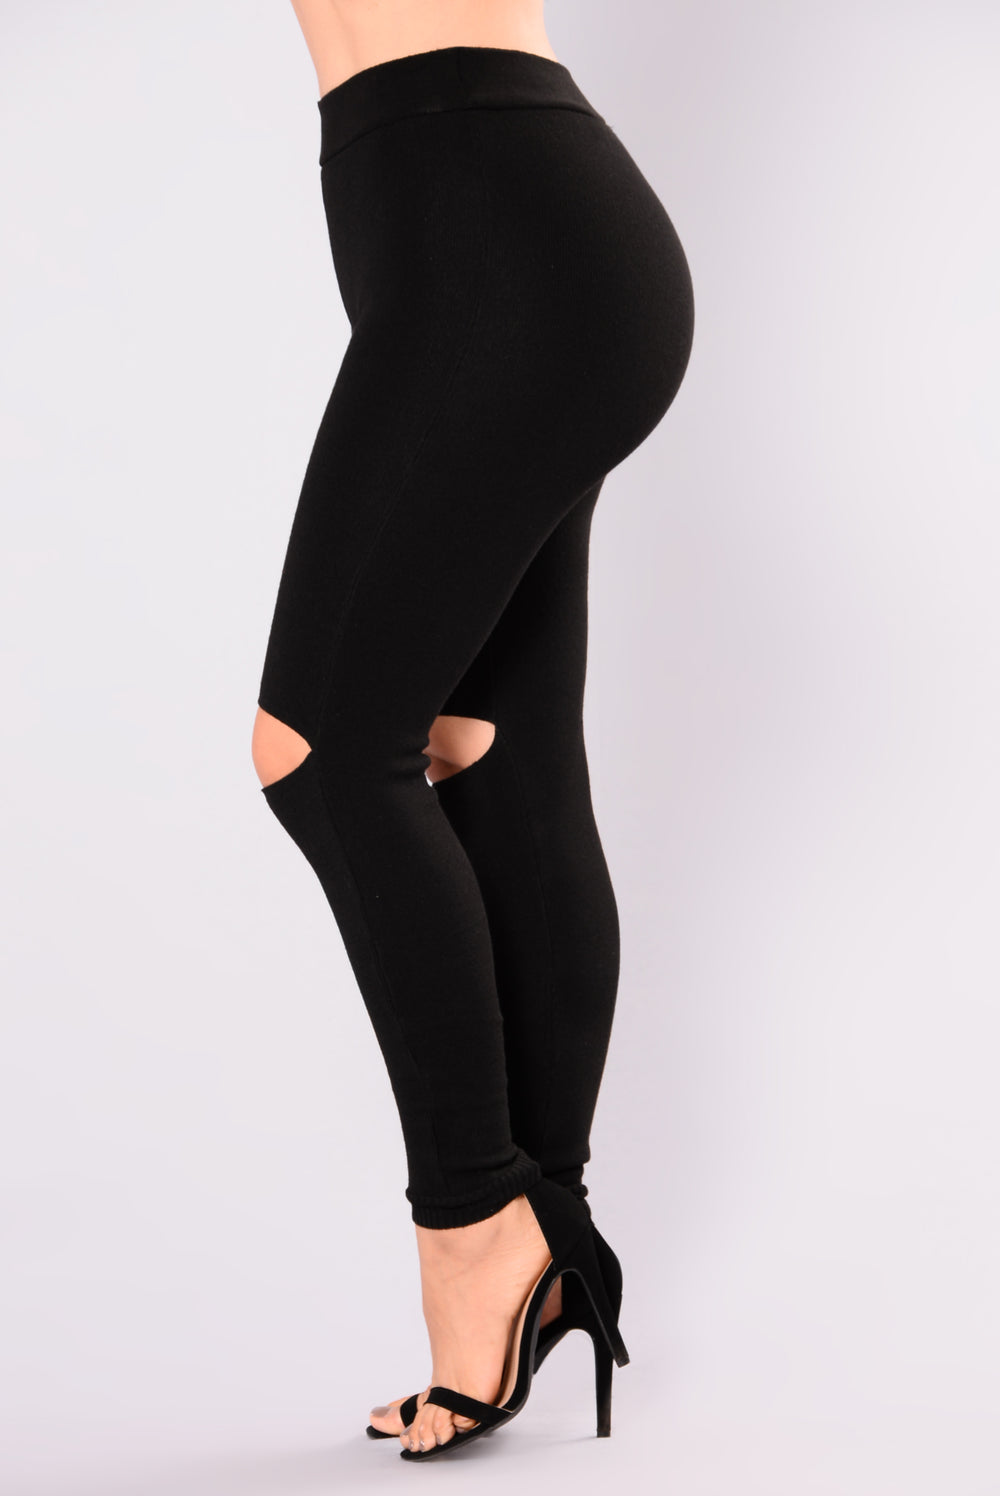 Sonja Knit Legging - Black